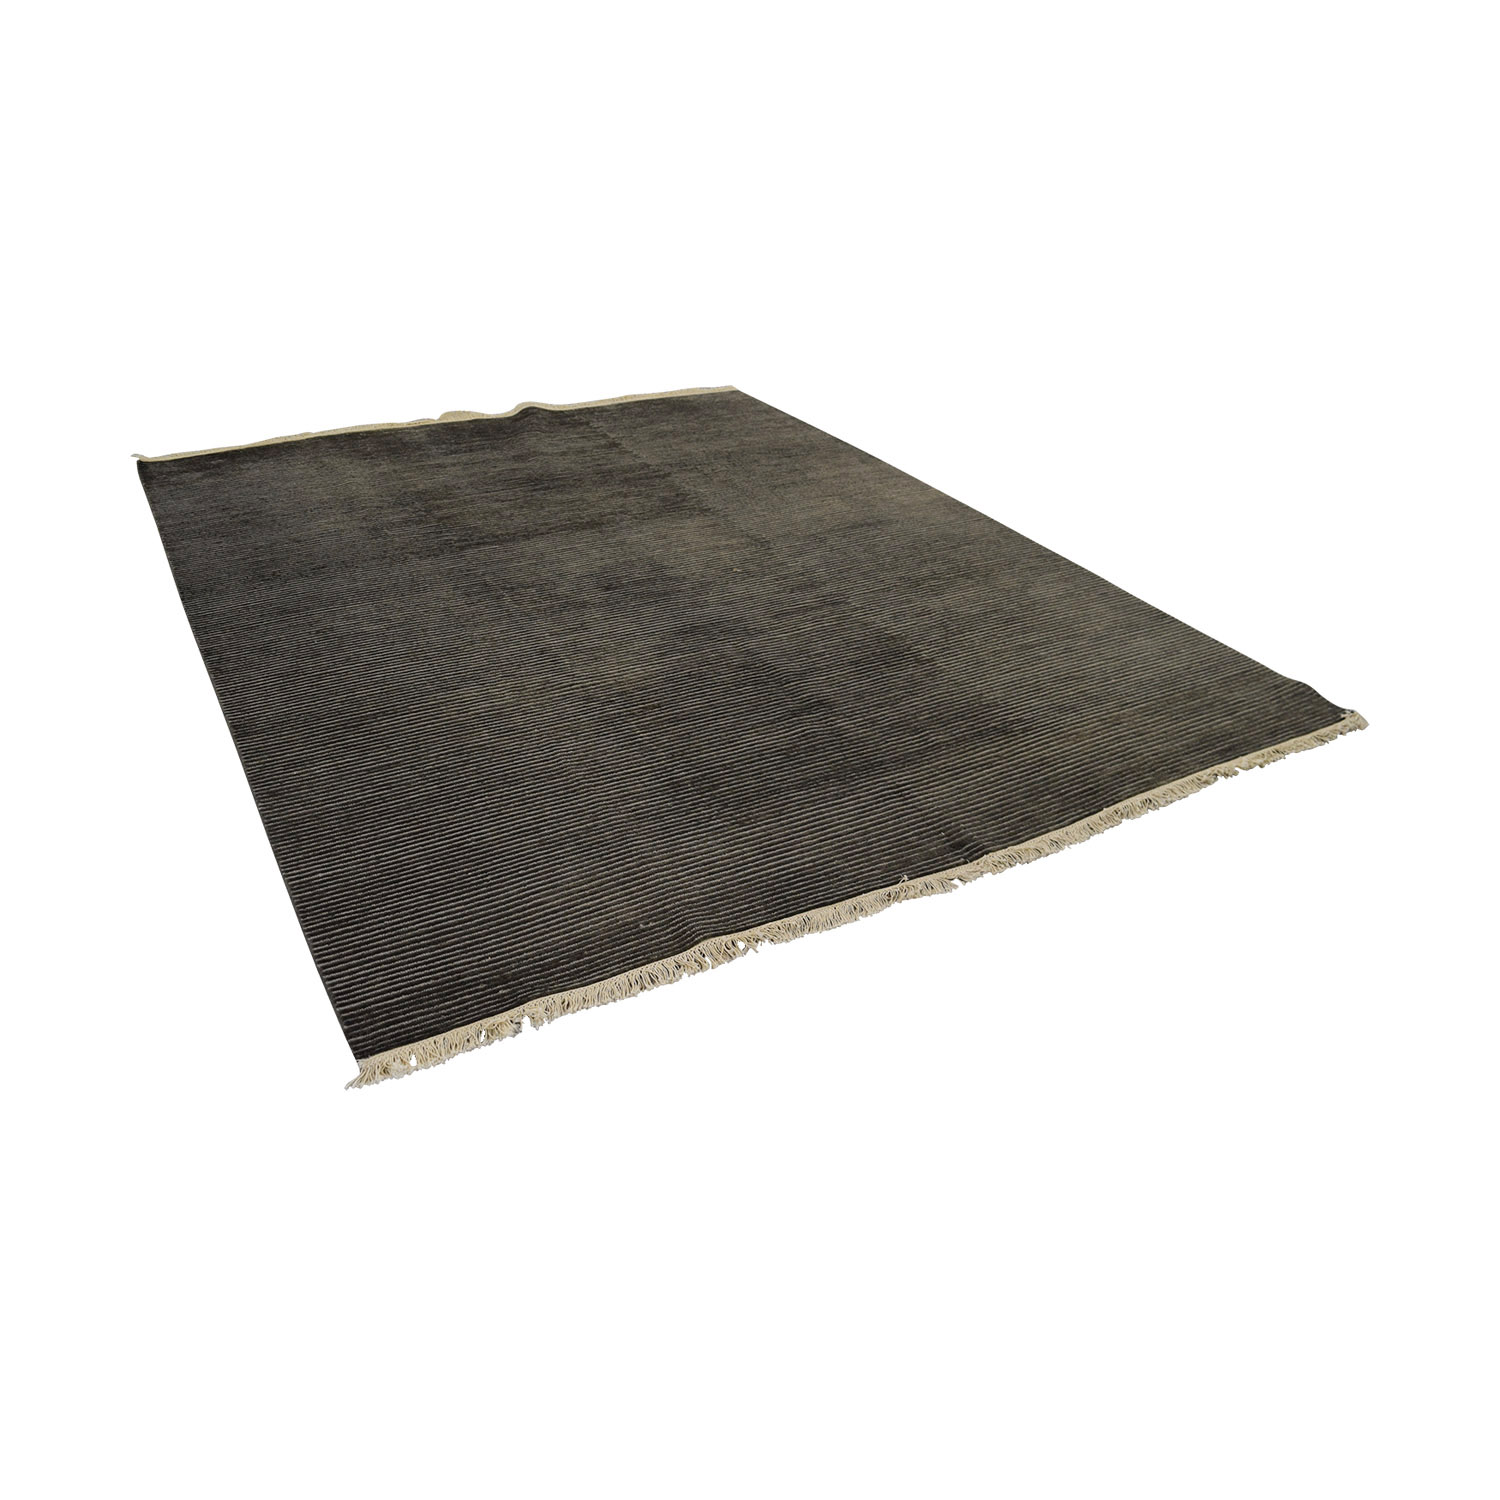 Room & Board Room & Board Talia Charcoal Grey Rug Decor